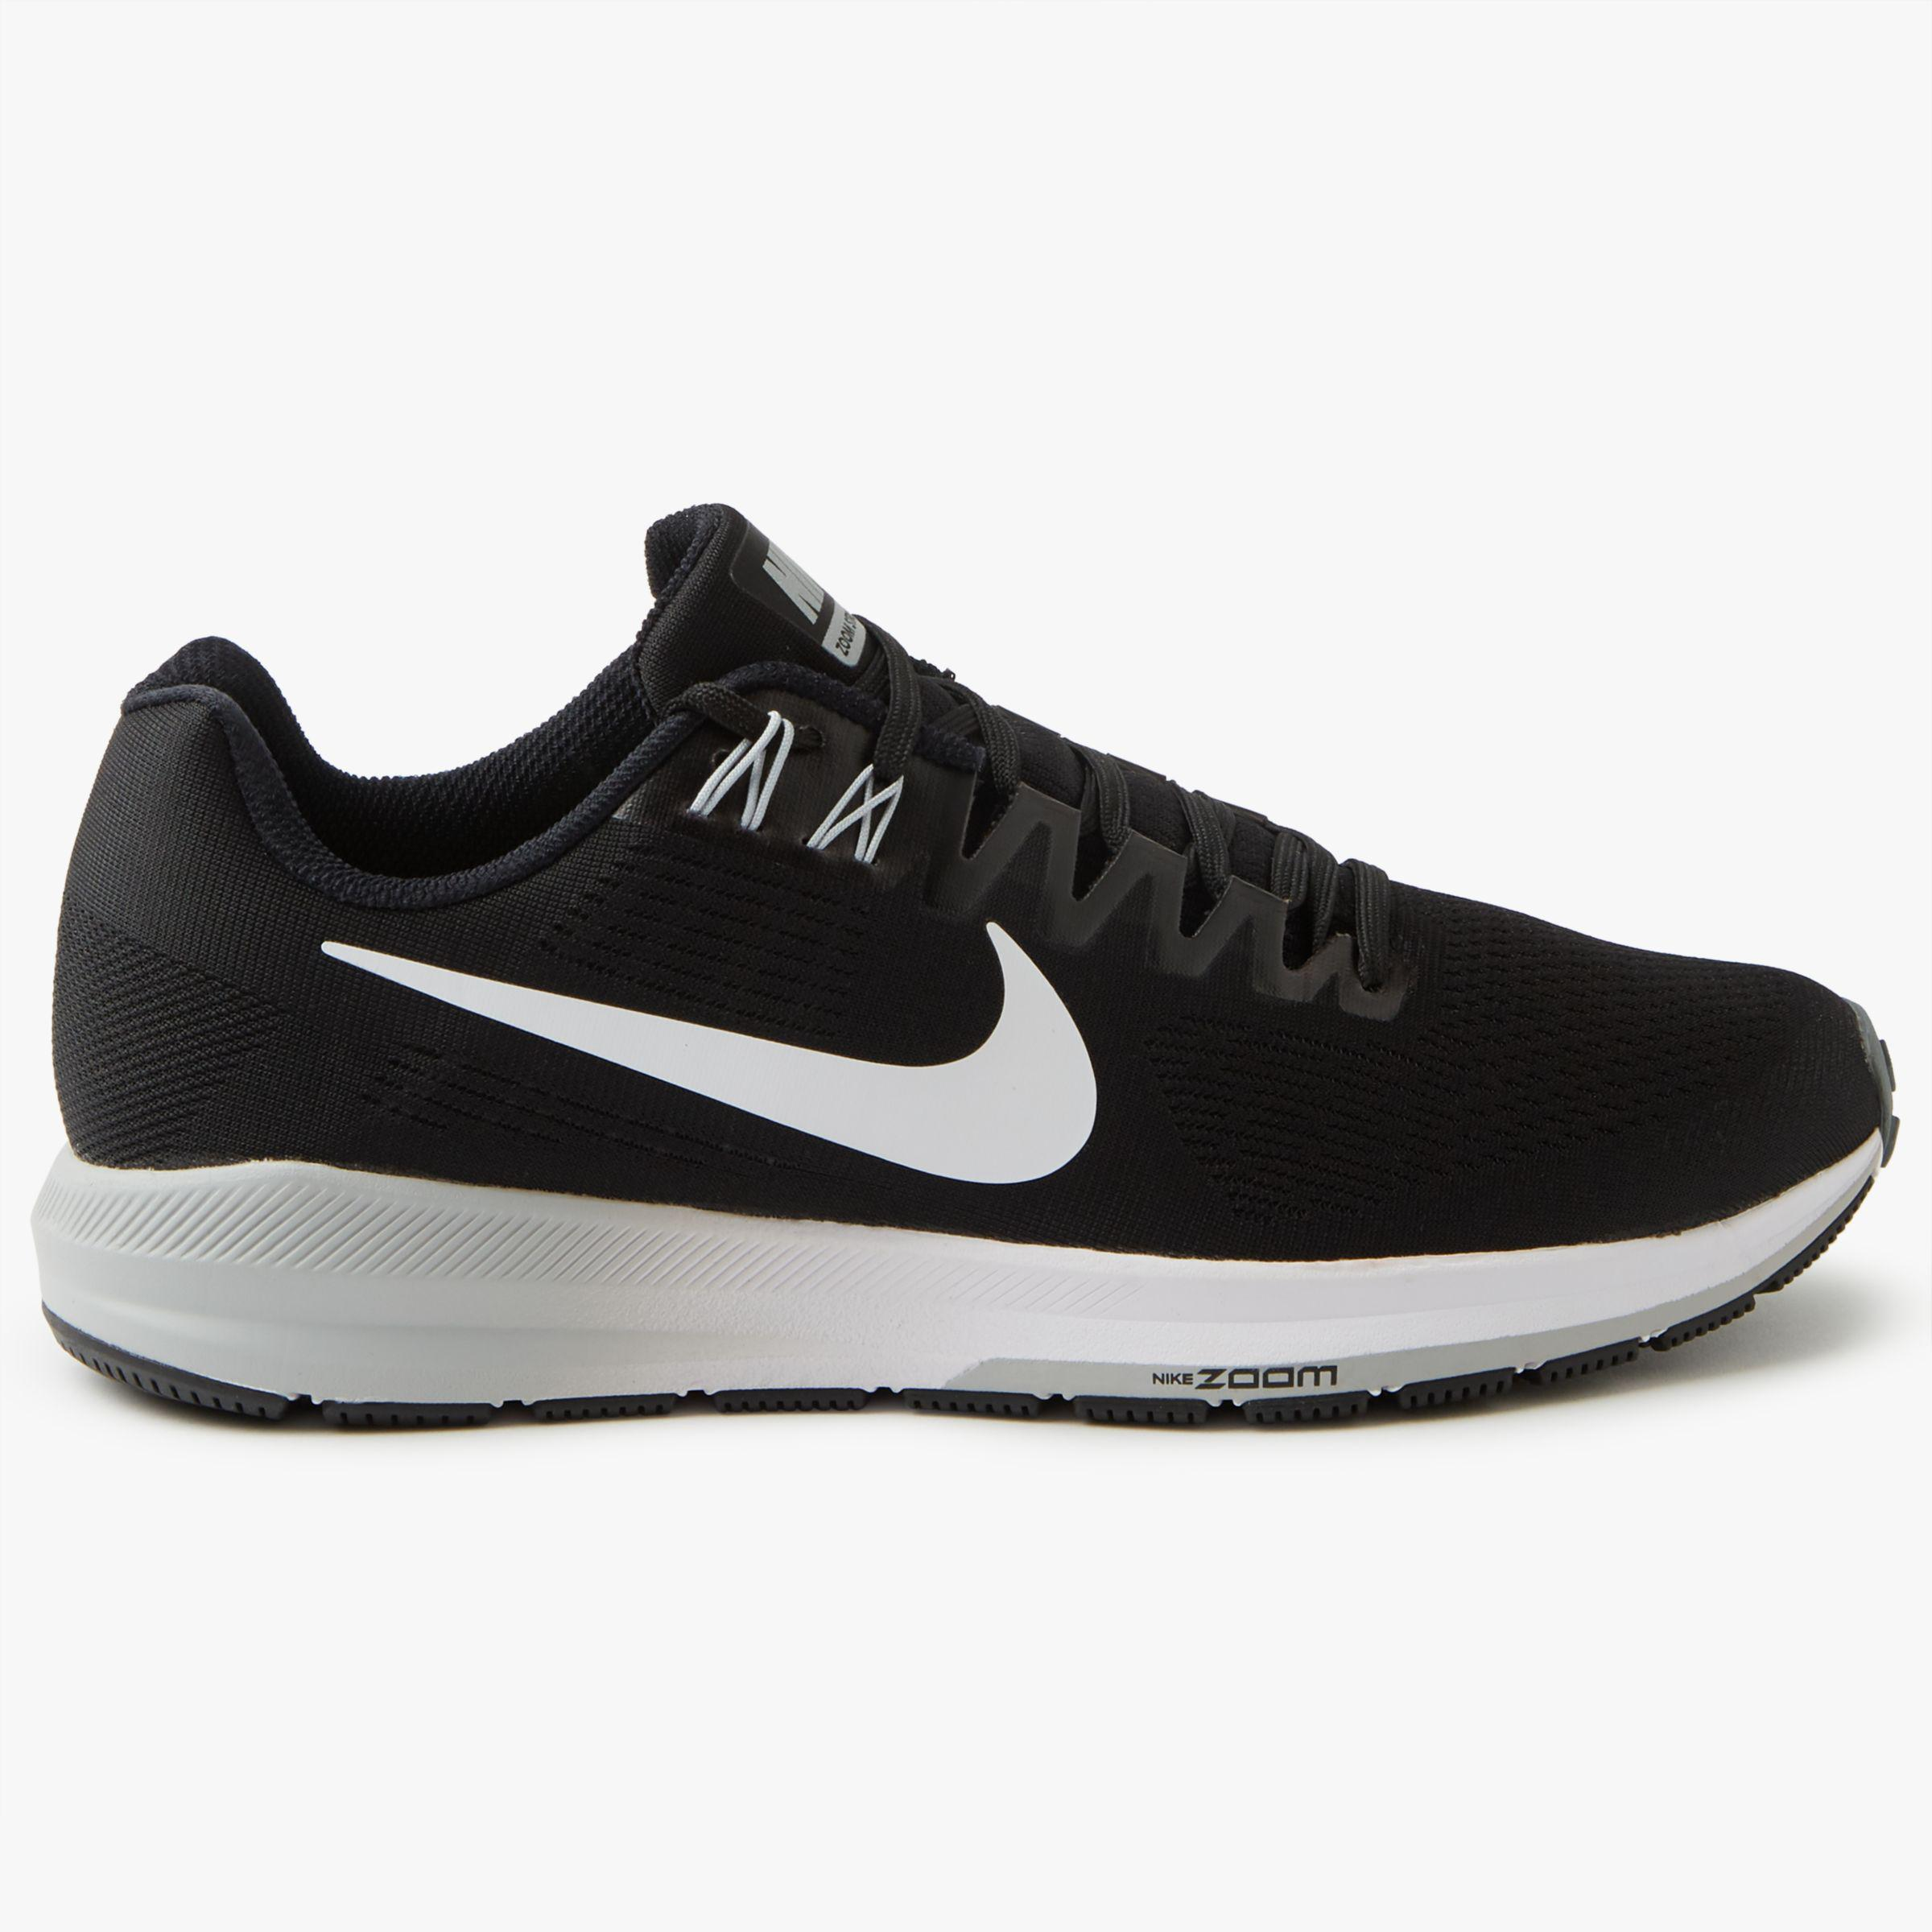 946f20dd8a2 Nike Air Zoom Structure 21 Men s Running Shoes in Black for Men - Lyst